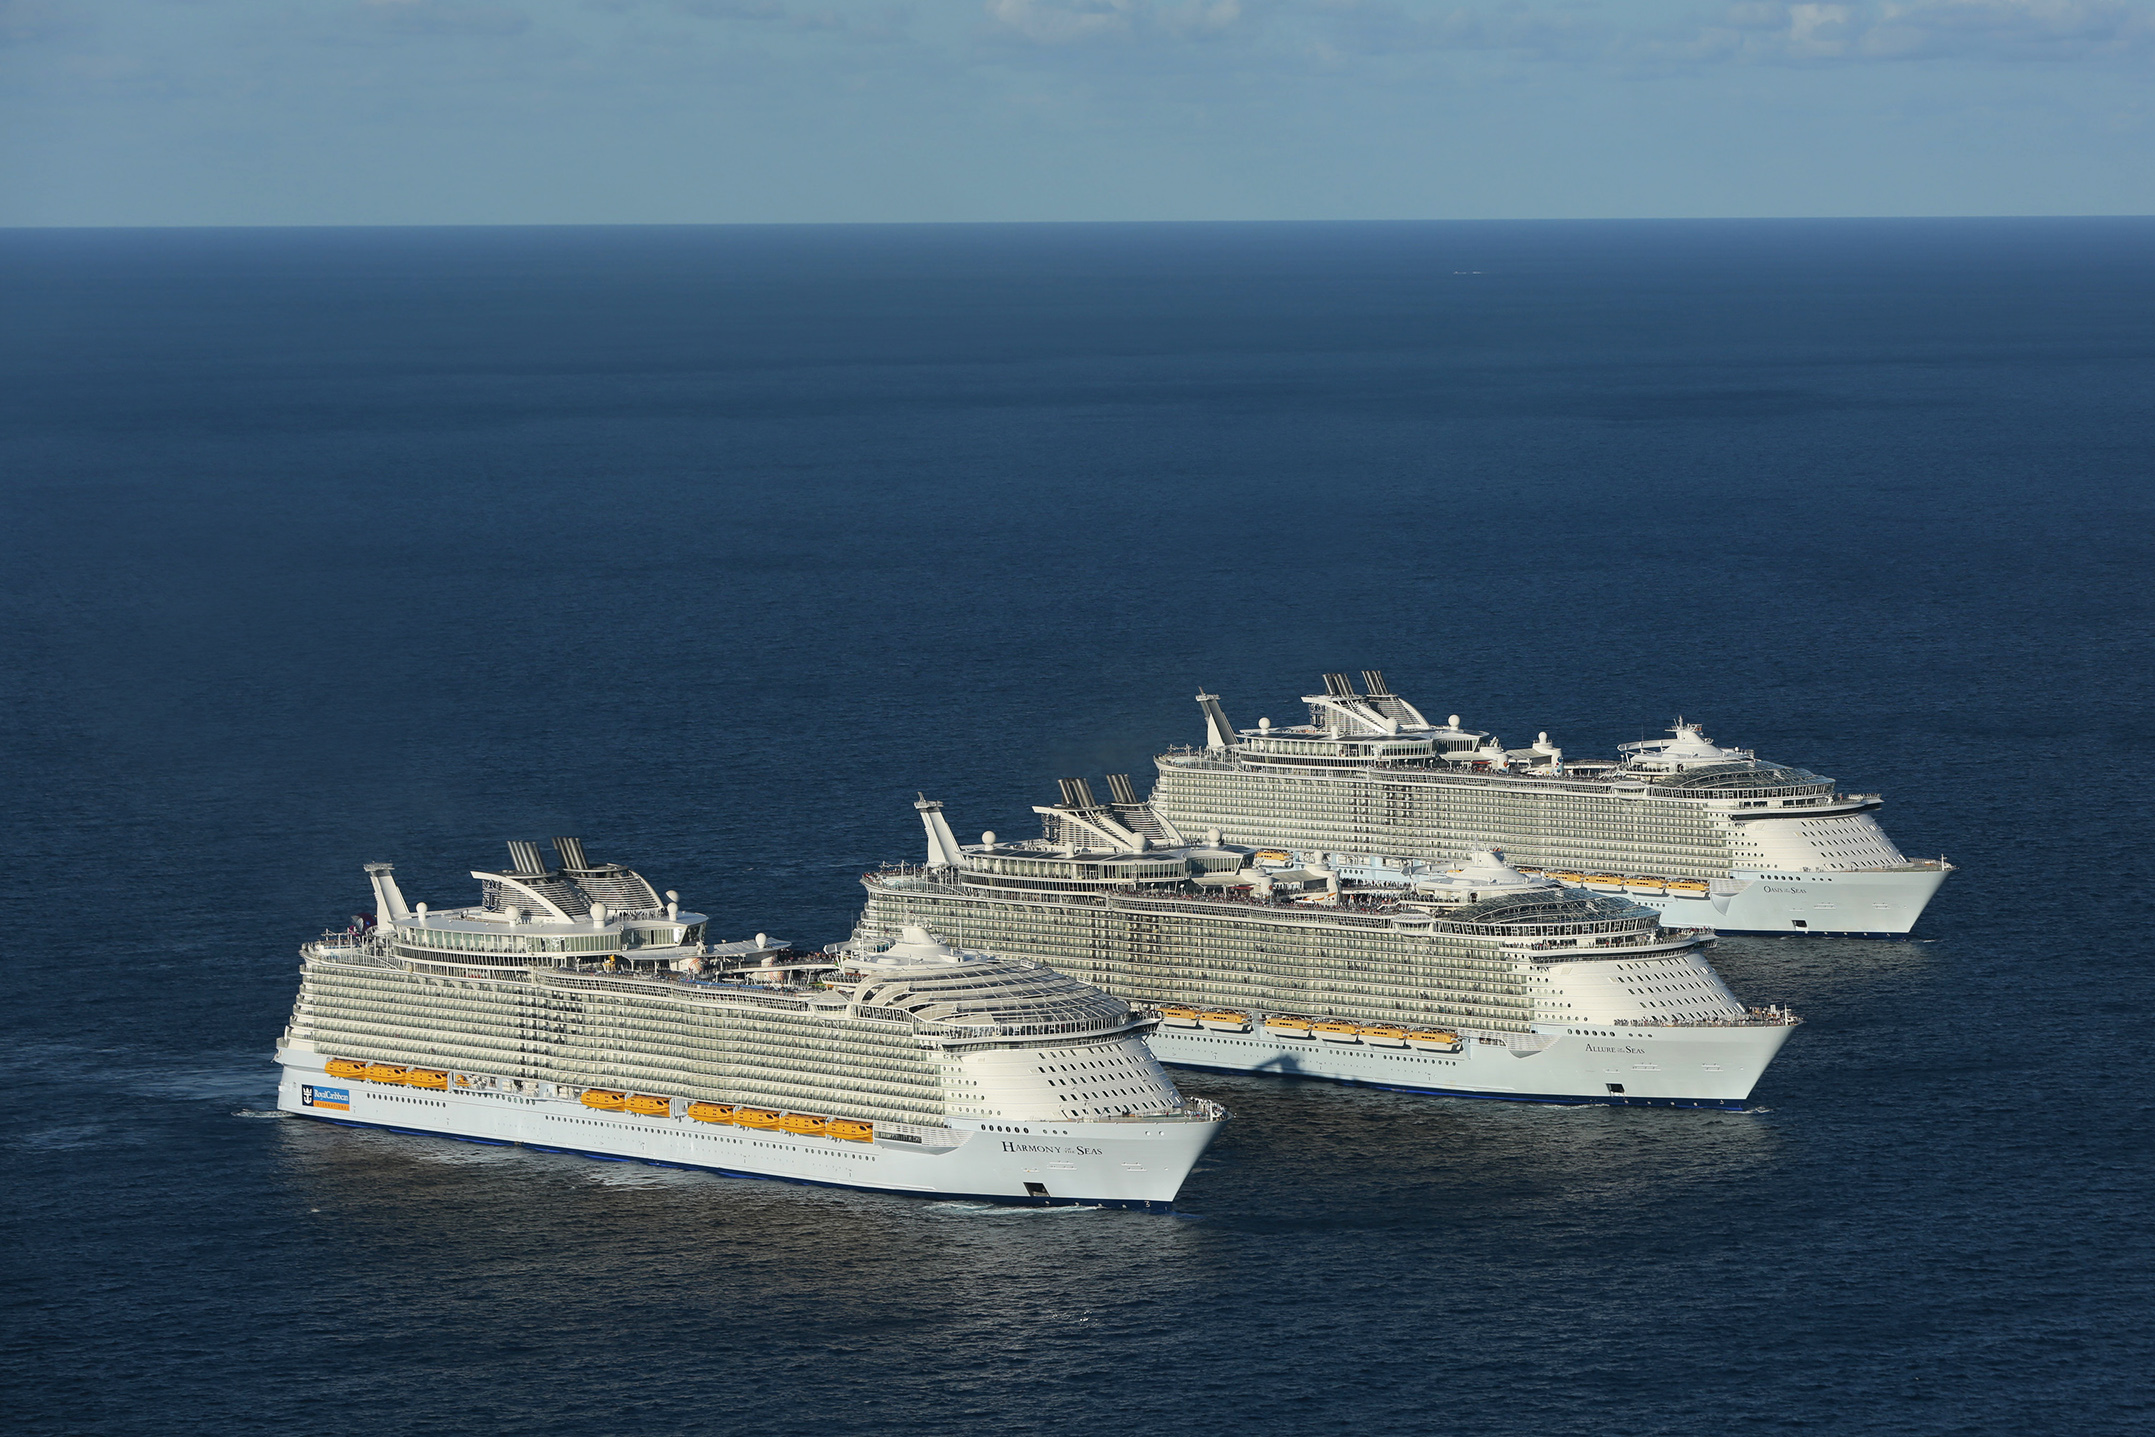 Three sister ships from Royal Caribbean's Oasis Class